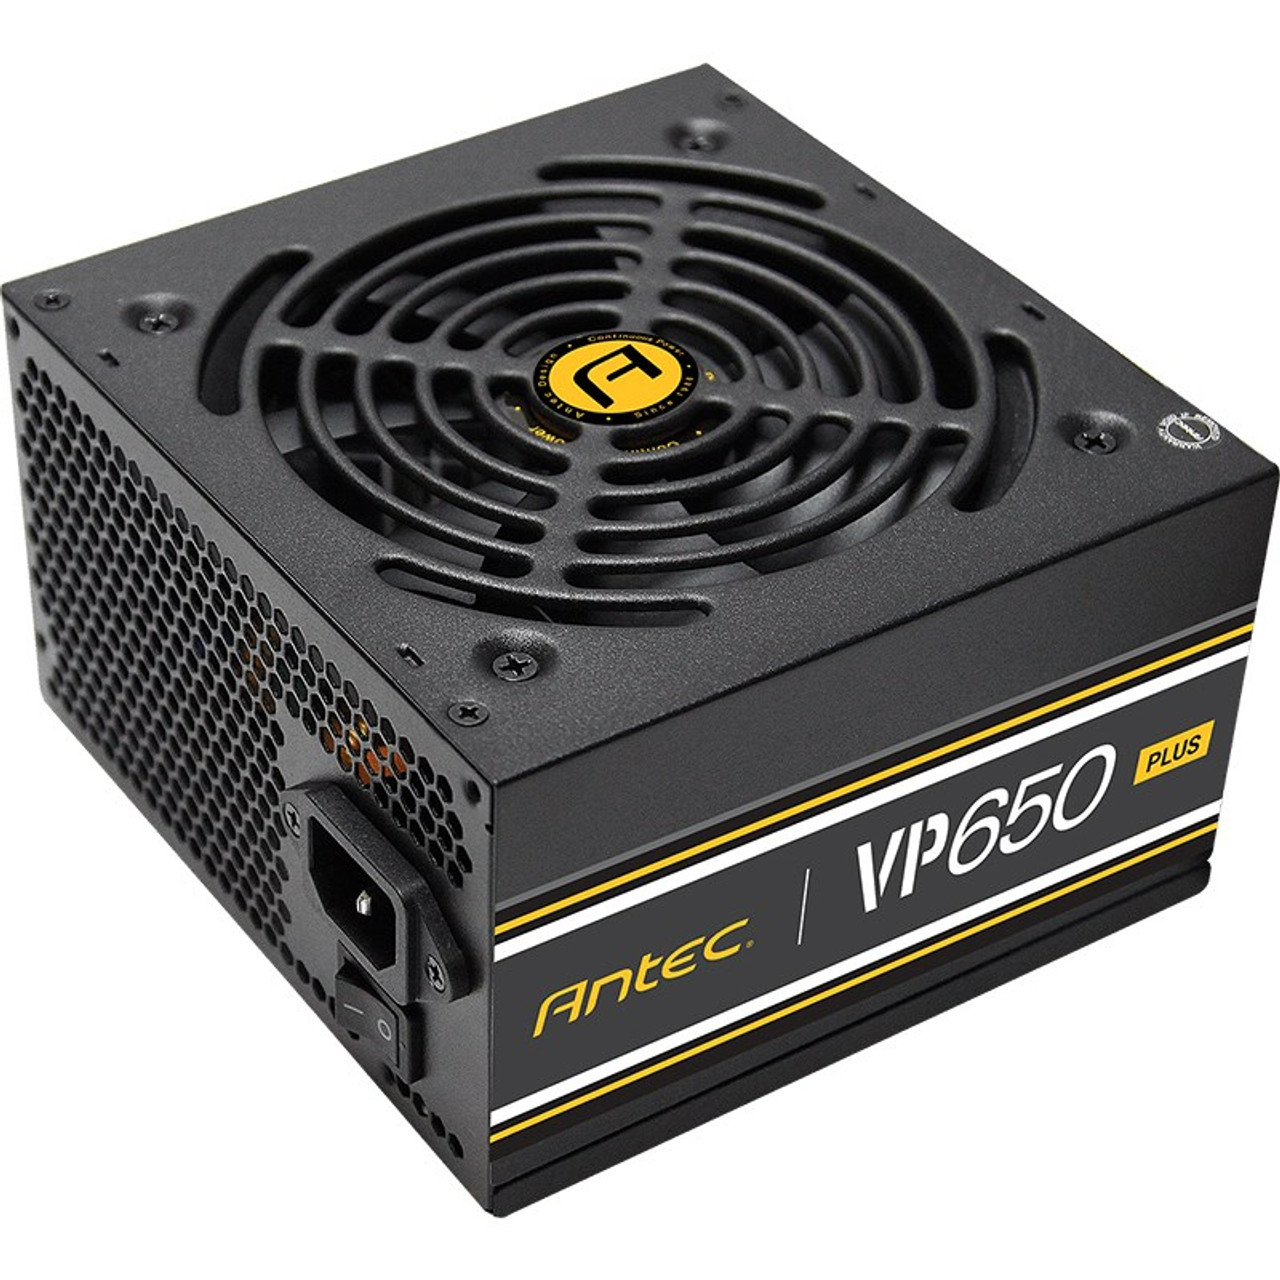 Image for Antec VP650P PLUS 500W 80+ PSU 120mm Power Supply CX Computer Superstore